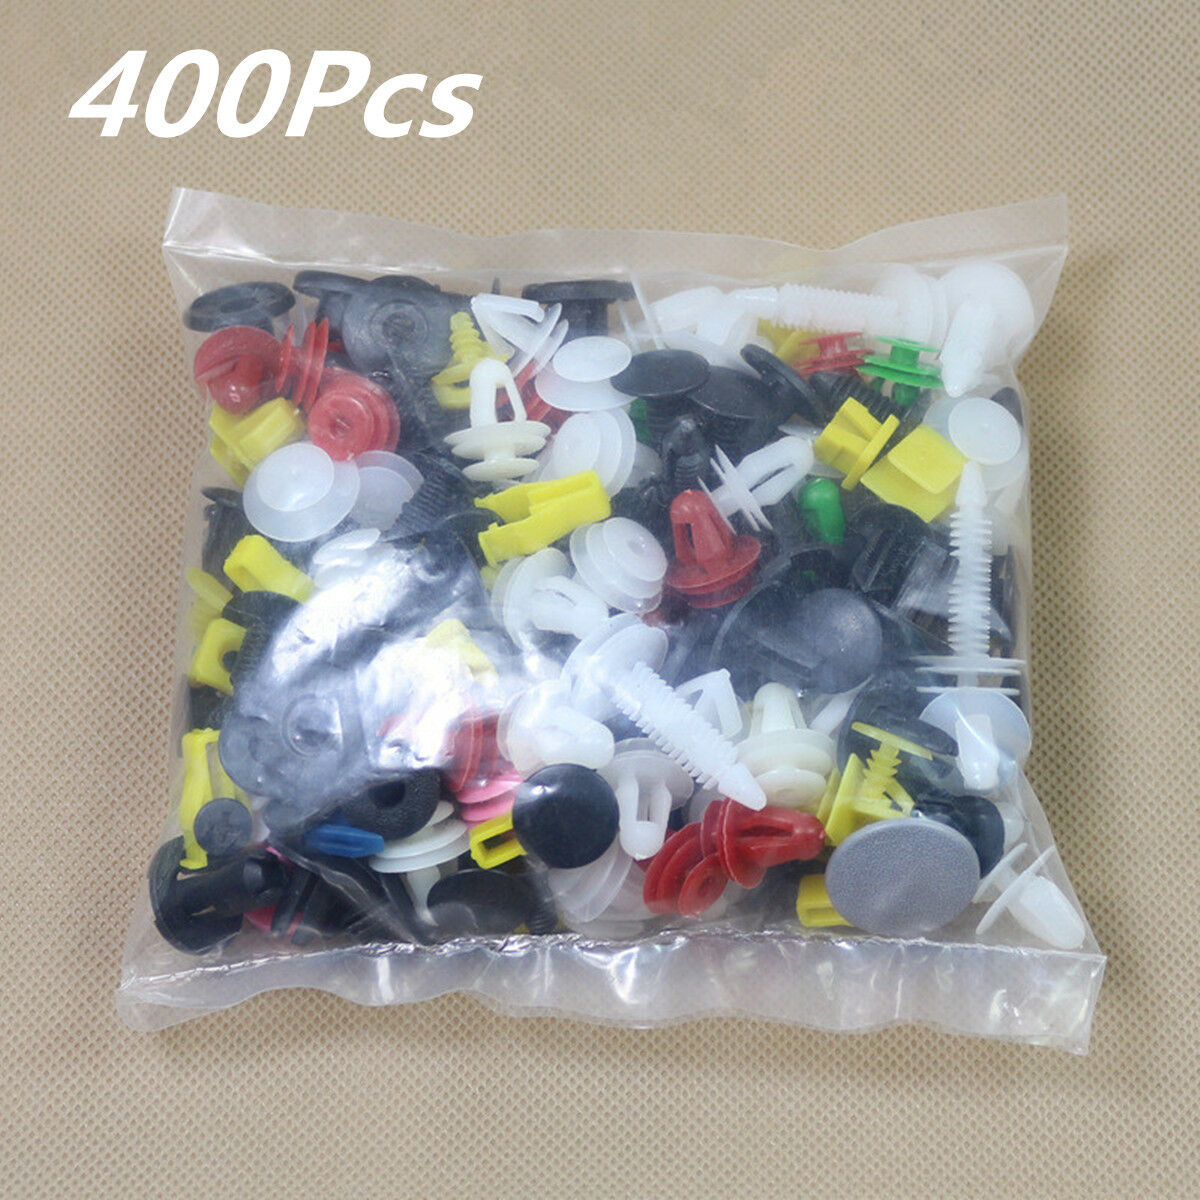 400PCS/Bag Mixed Plastic Fastener Vehicle Car Bumper Door Liner Clips Retainers